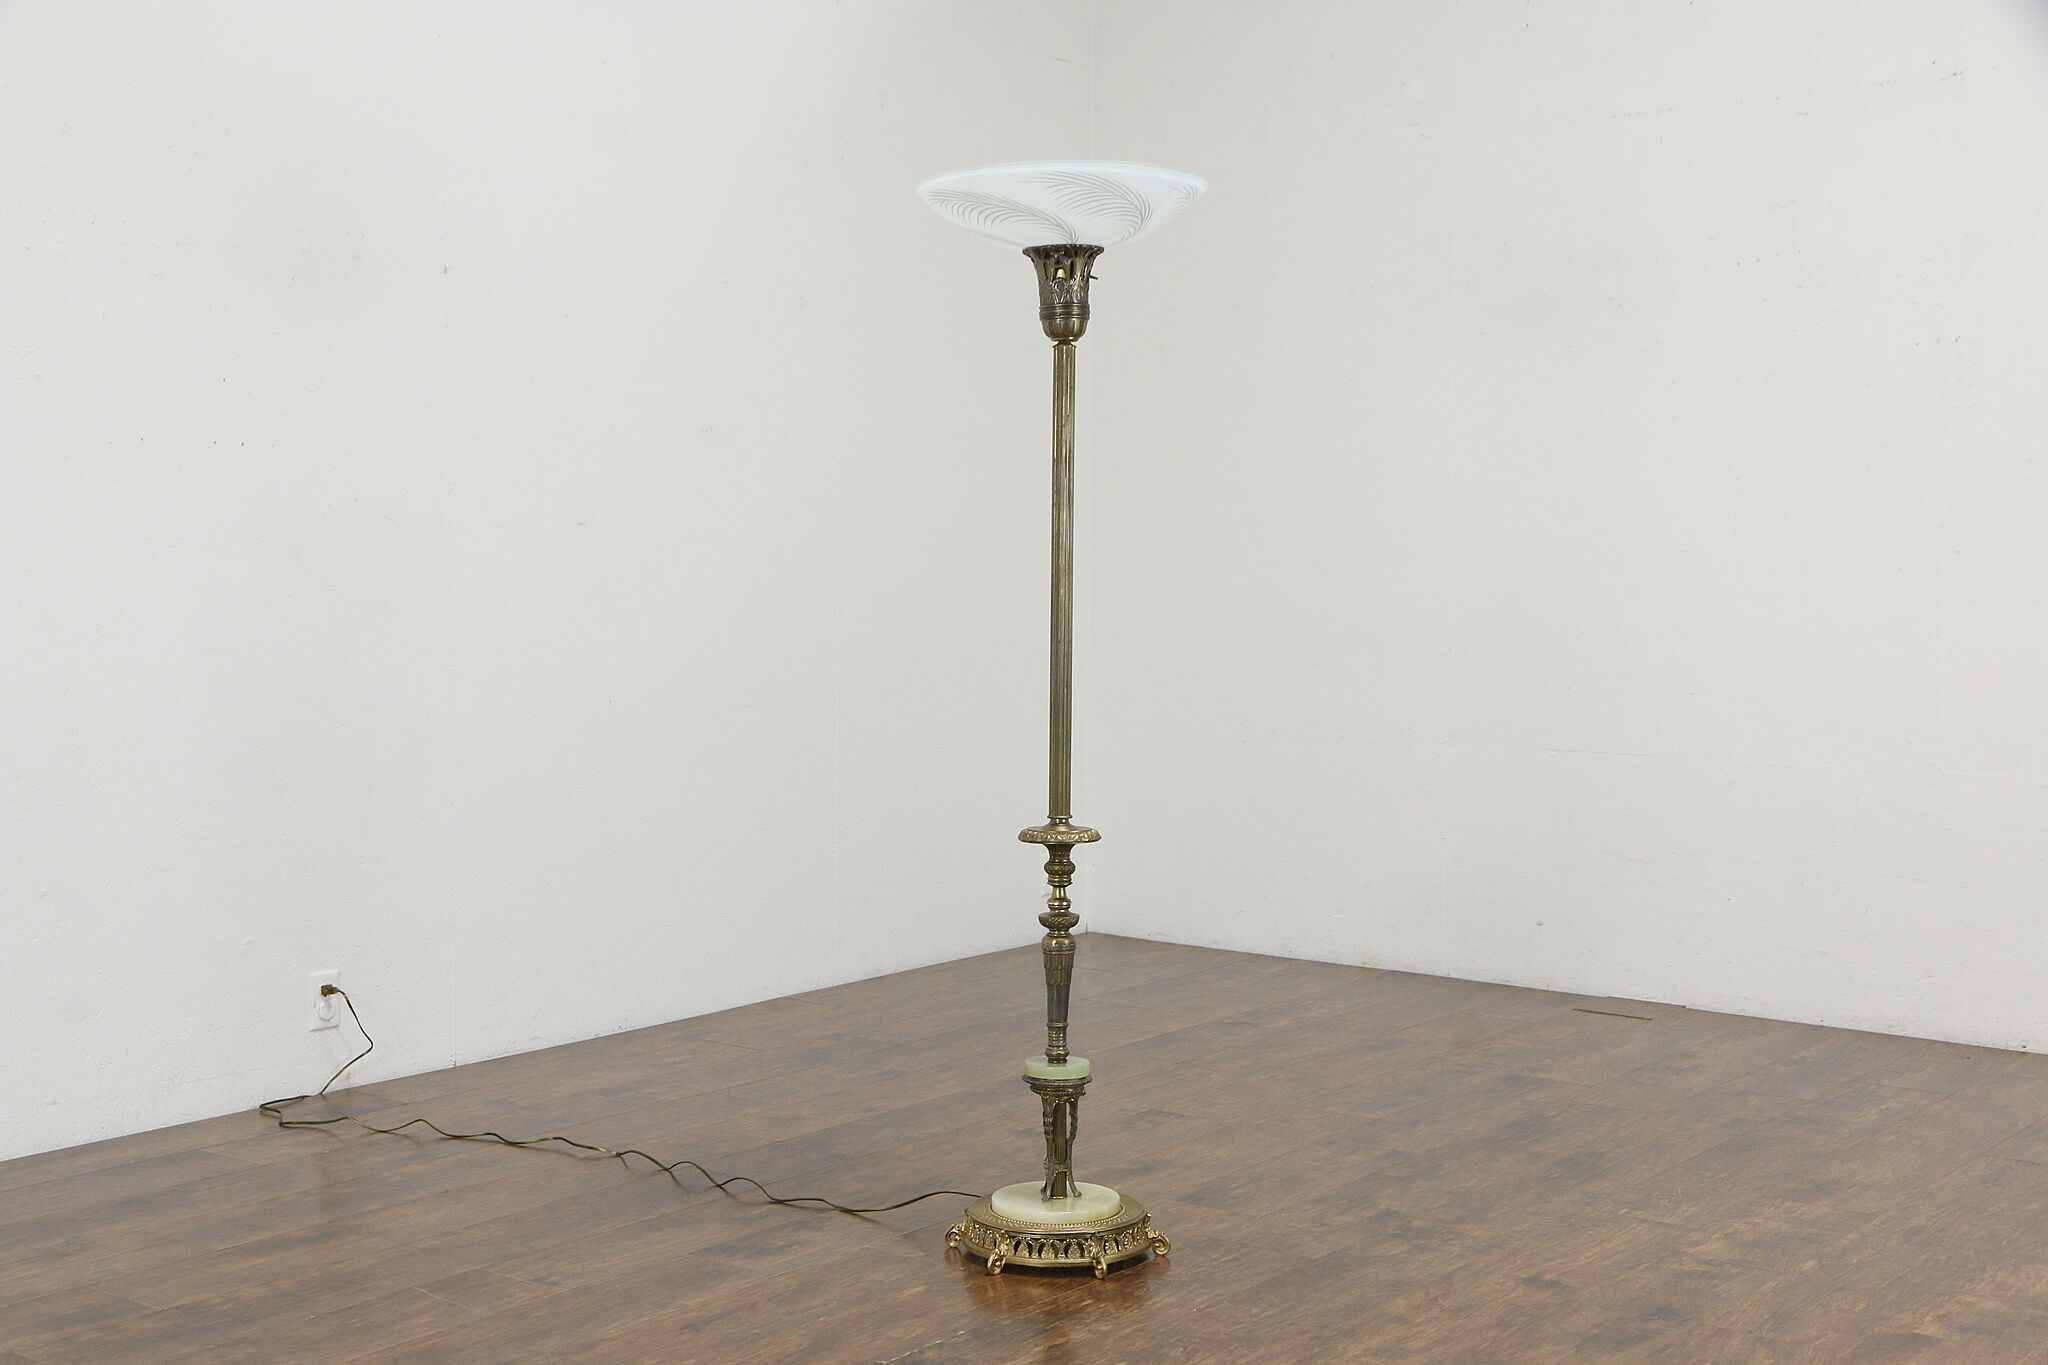 Torchiere Vintage Floor Lamp Onyx Brass Mounts Etched Glass Shade 35871 Harp Gallery Antiques Furniture